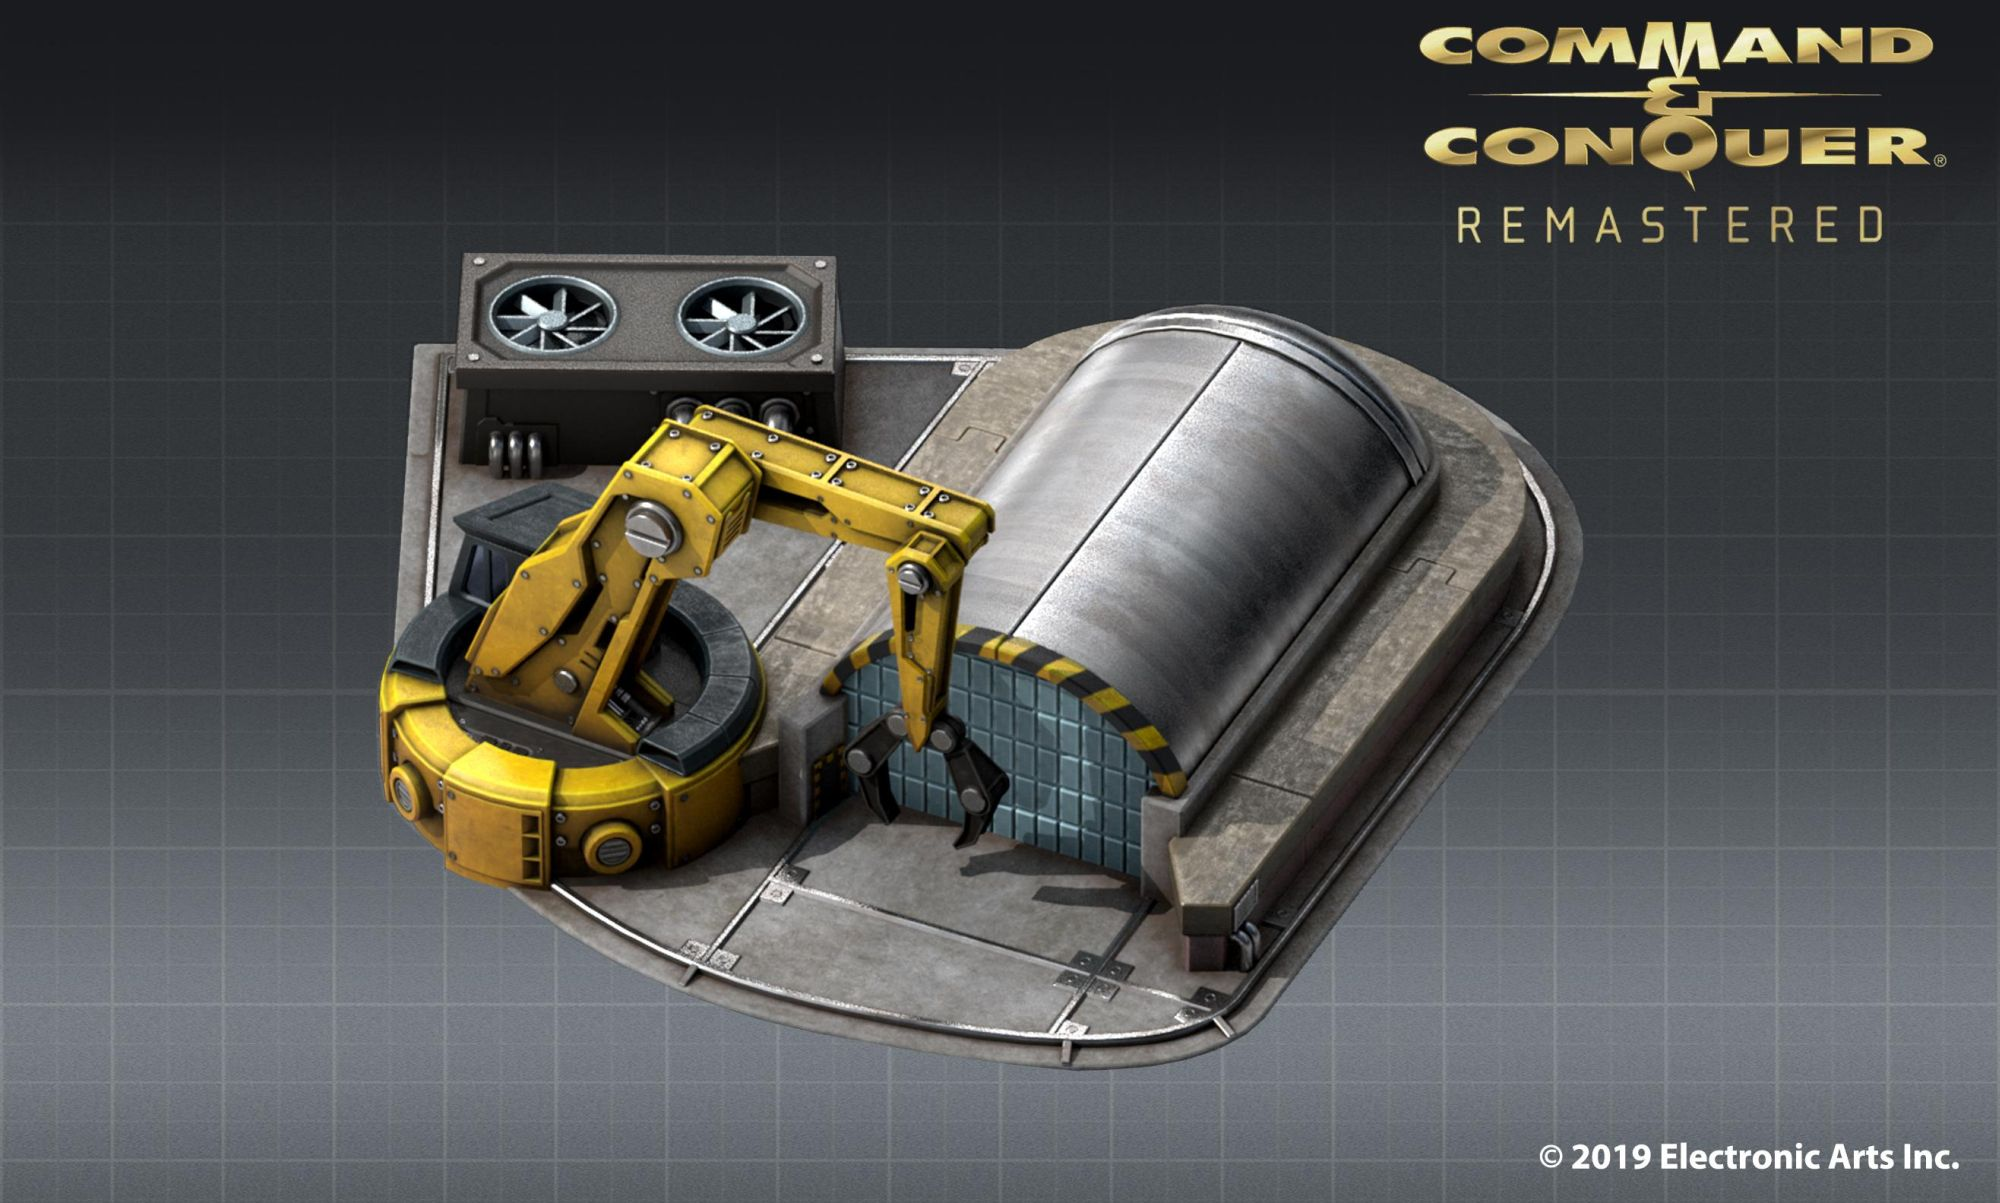 Command conquer remastered itndaily for Budet construction